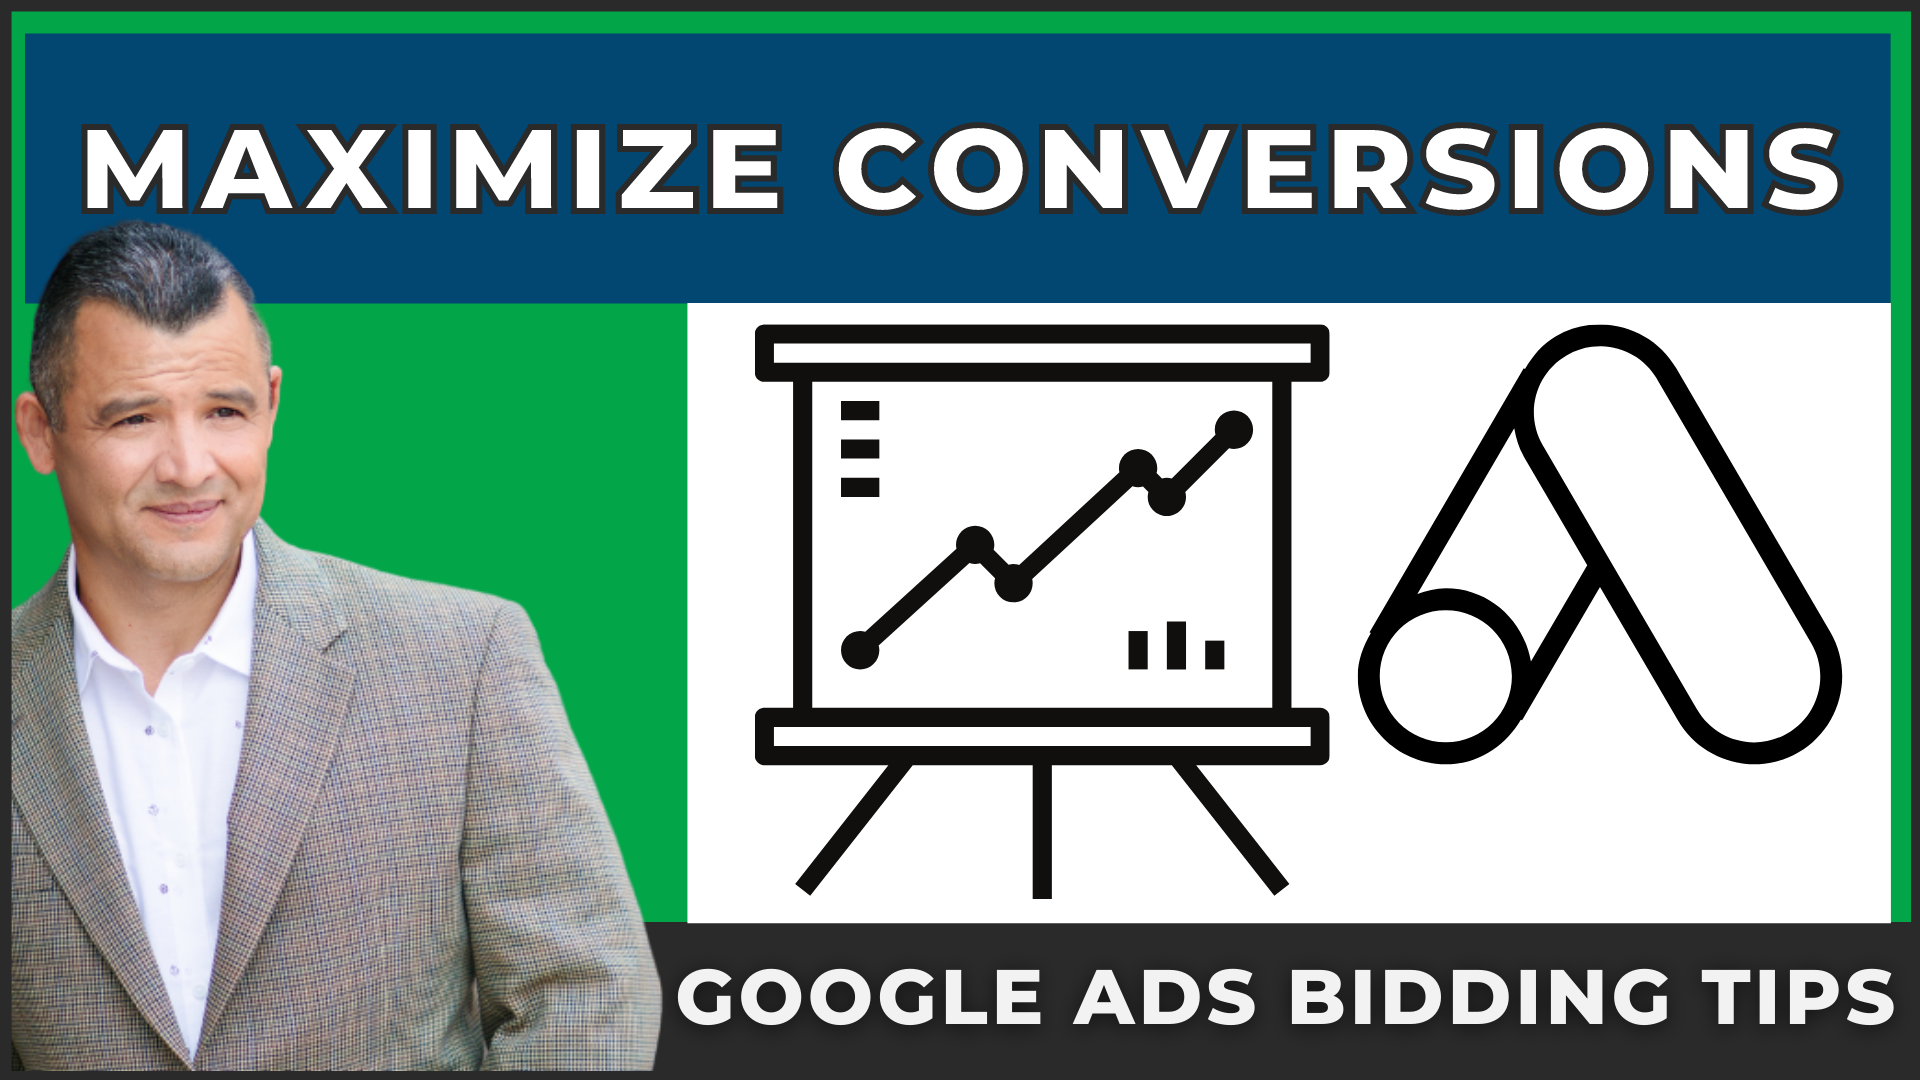 Maximize Conversions How This Bidding Strategy Can Work for You